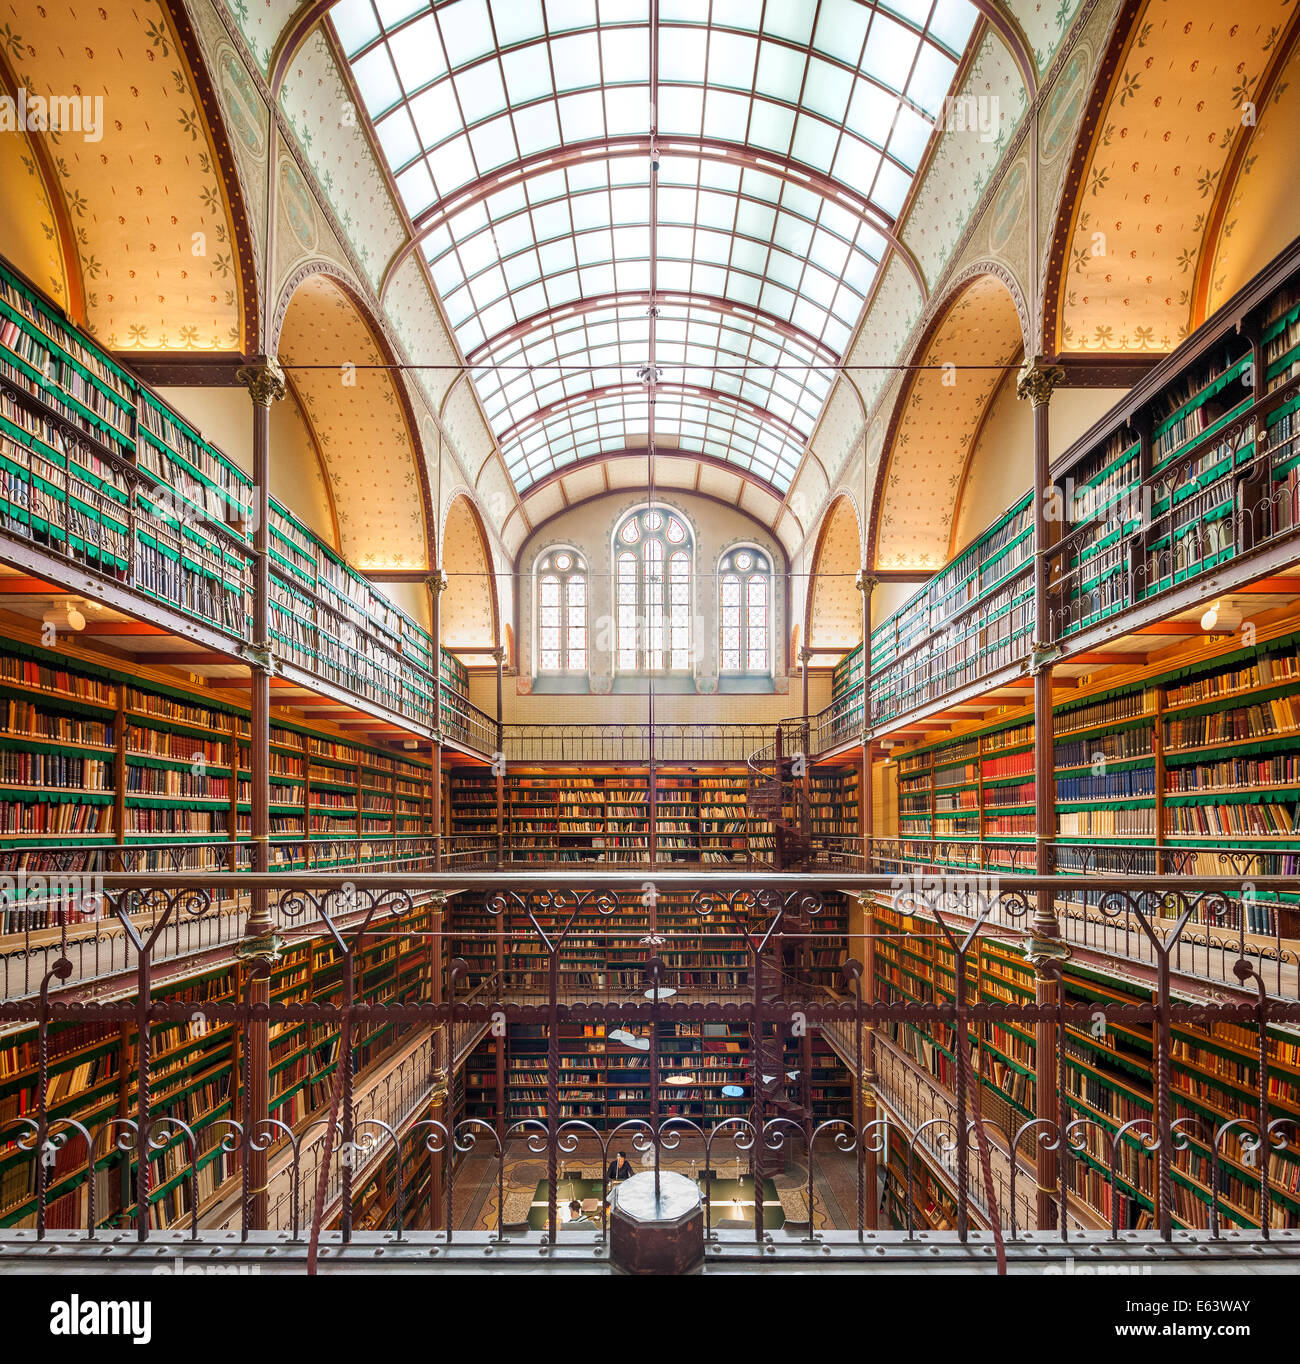 http://c7.alamy.com/comp/E63WAY/rijksmuseum-amsterdam-library-of-the-amsterdam-rijksmuseum-one-of-E63WAY.jpg